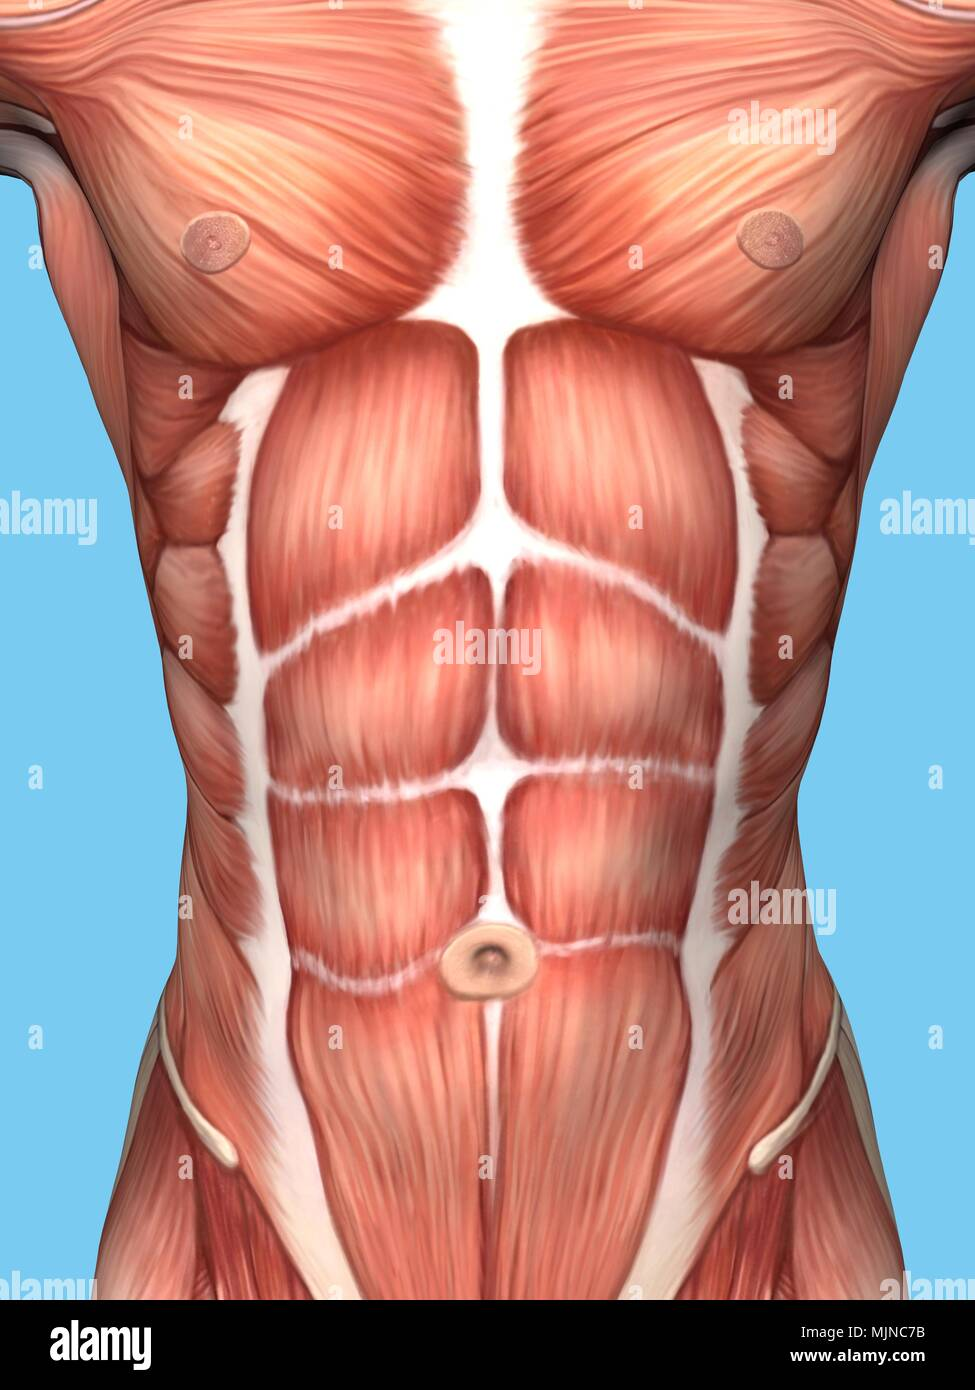 Anatomy of male chest and torso featuring major muscular groups ...